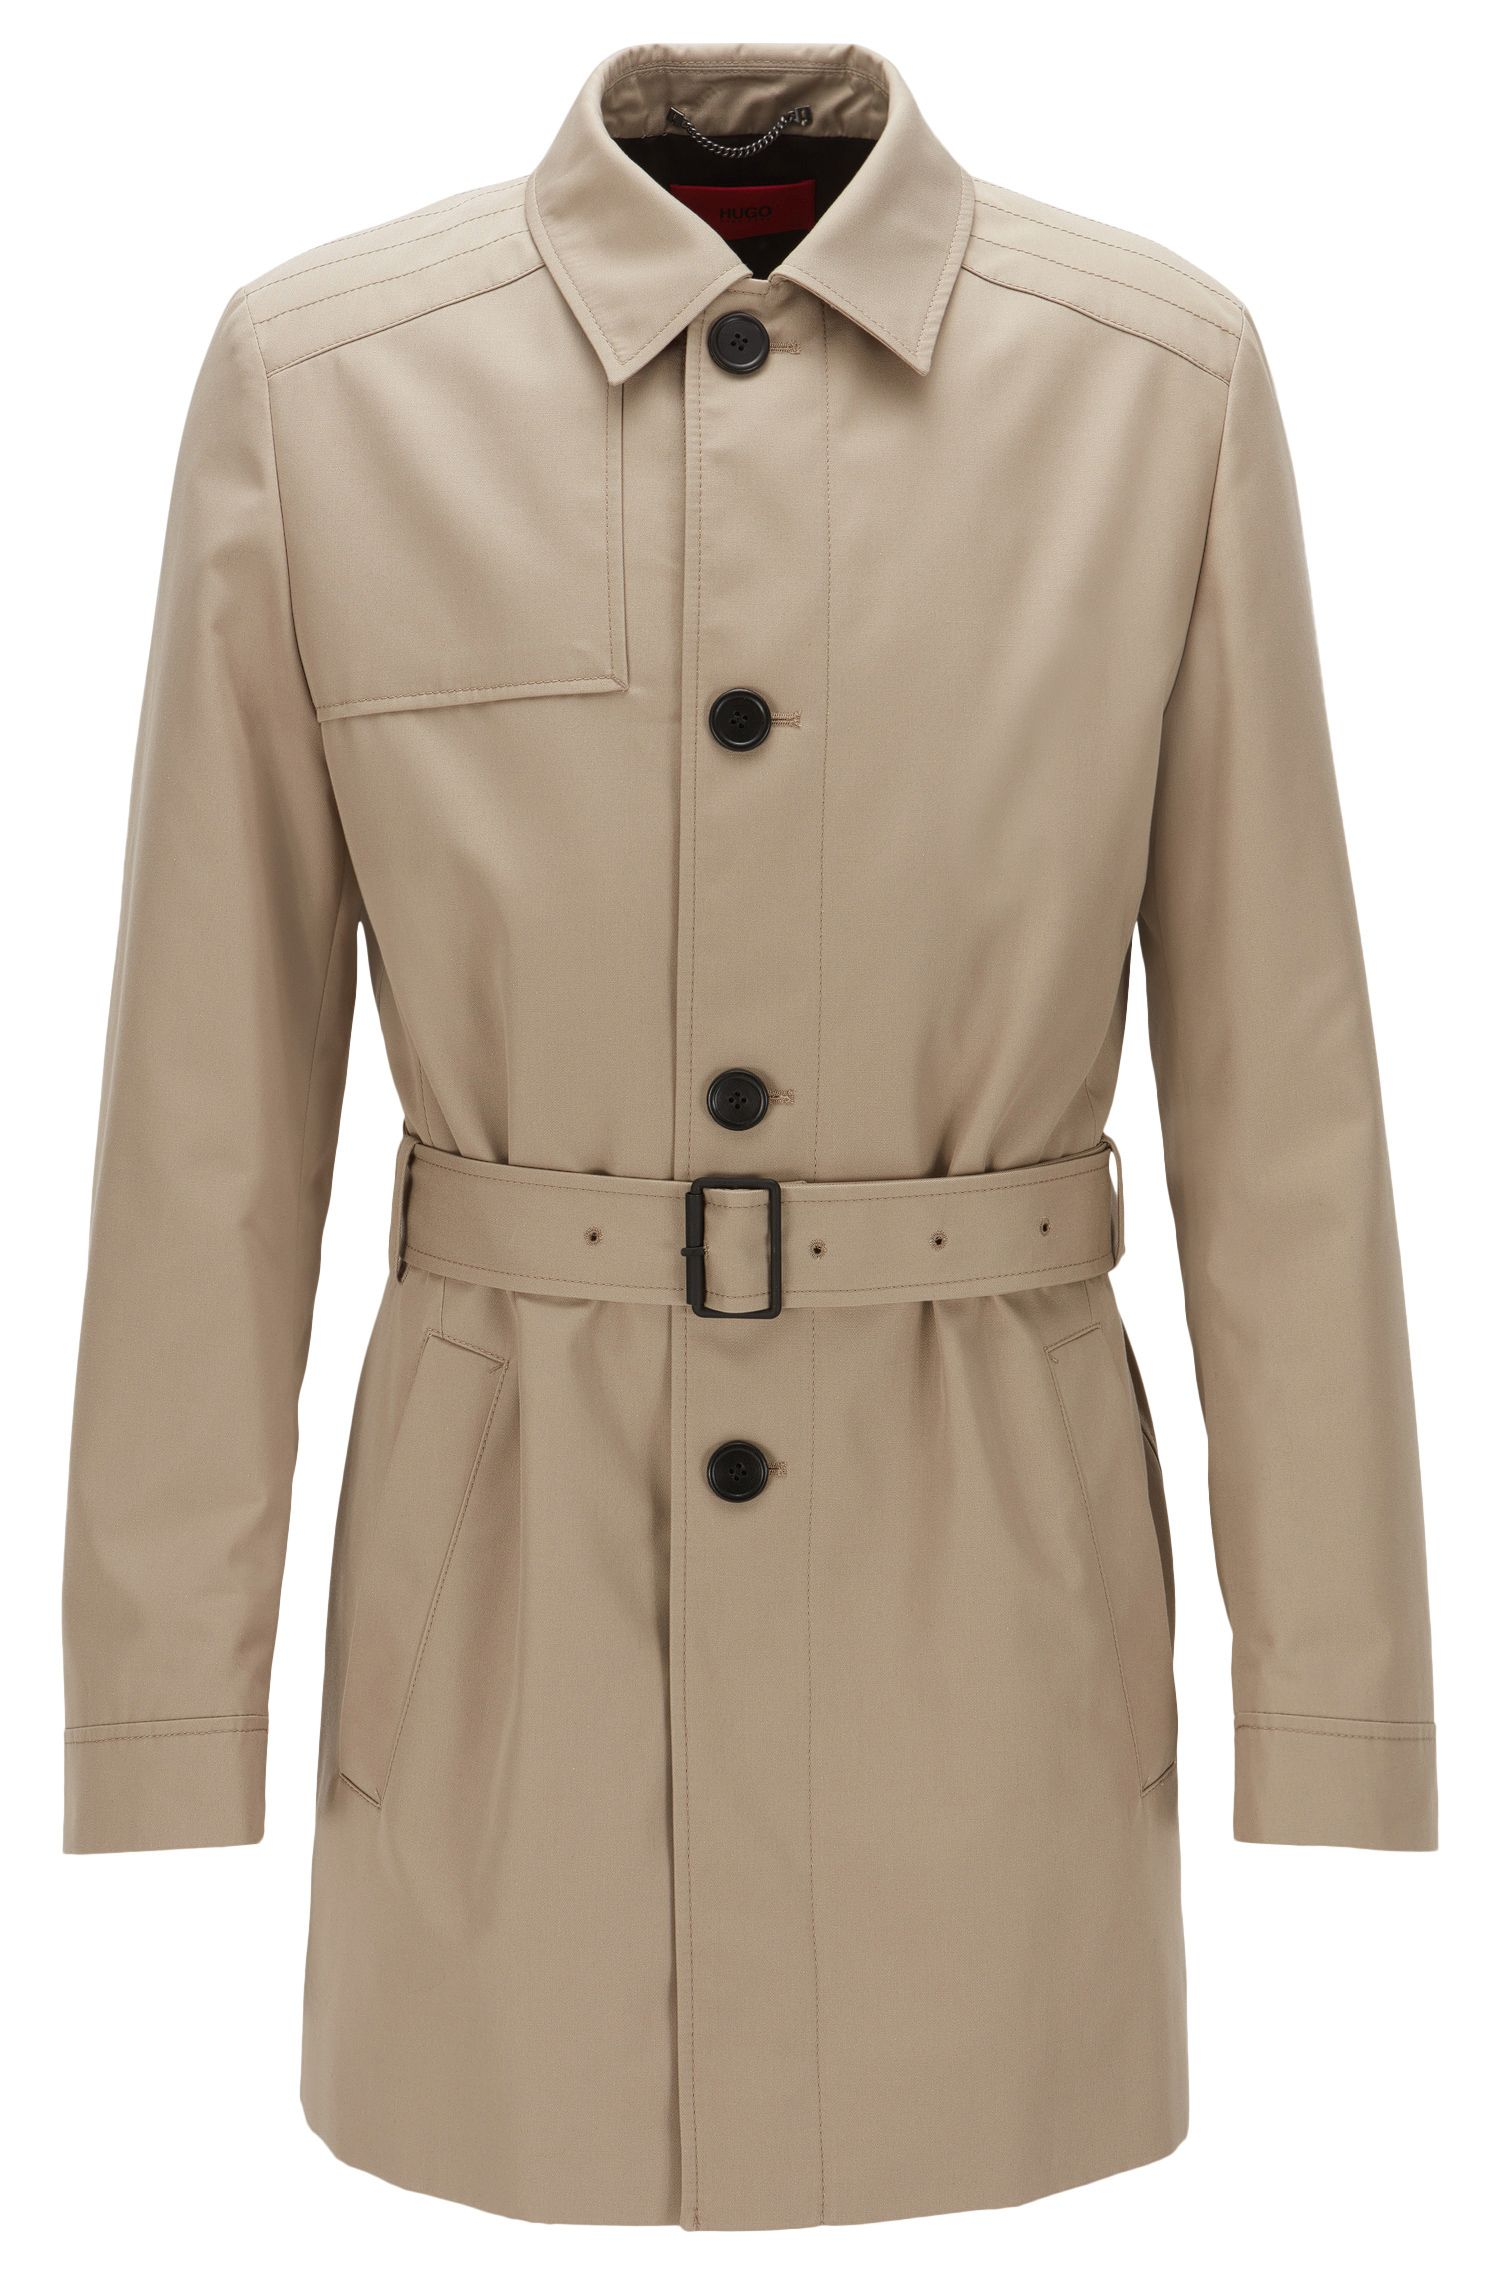 Middellange slim-fit trenchcoat van waterafstotend materiaal